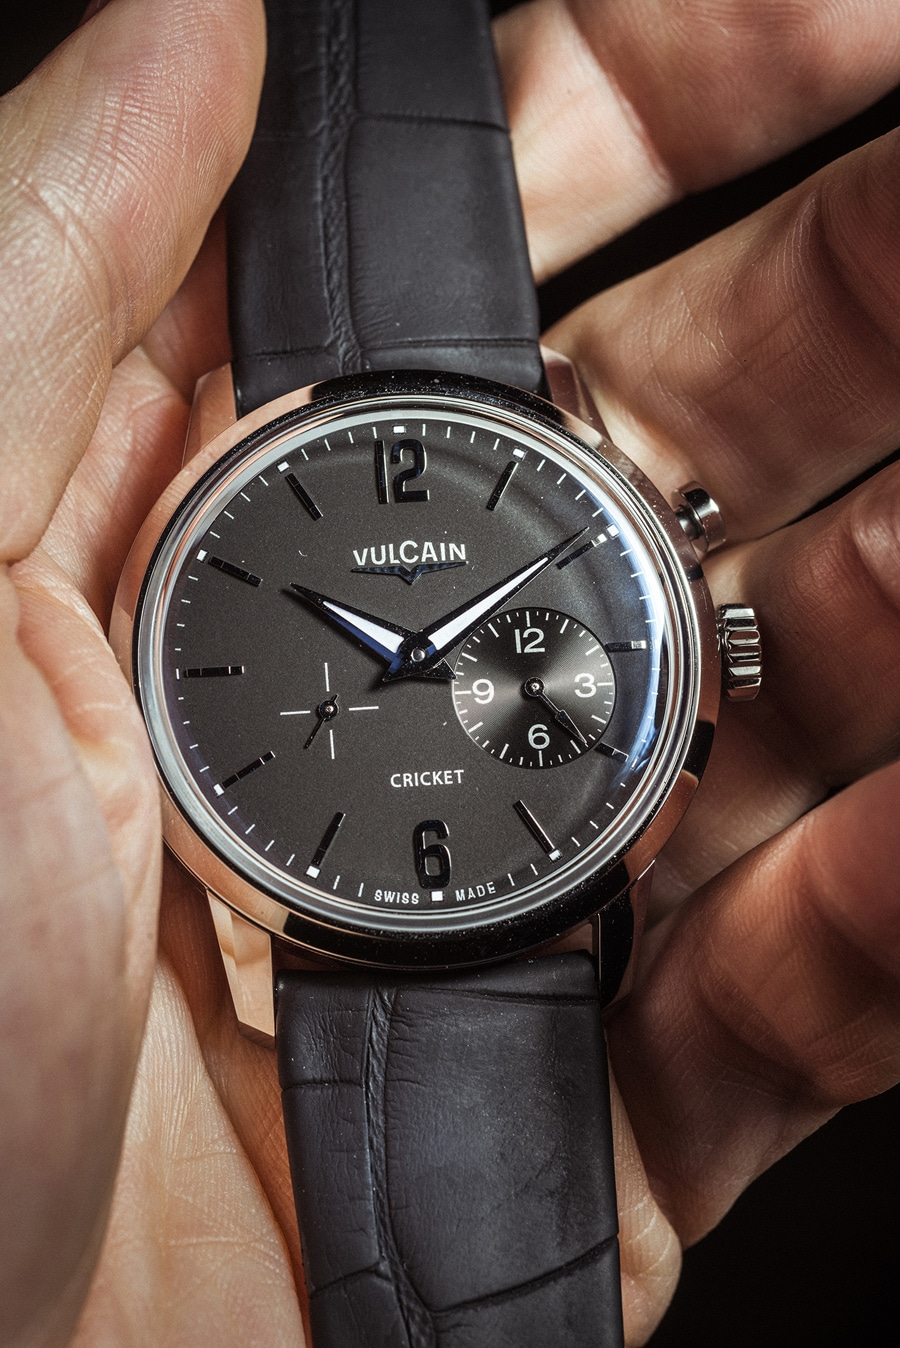 Vulcain: 50s Presidents' Watch Tradition